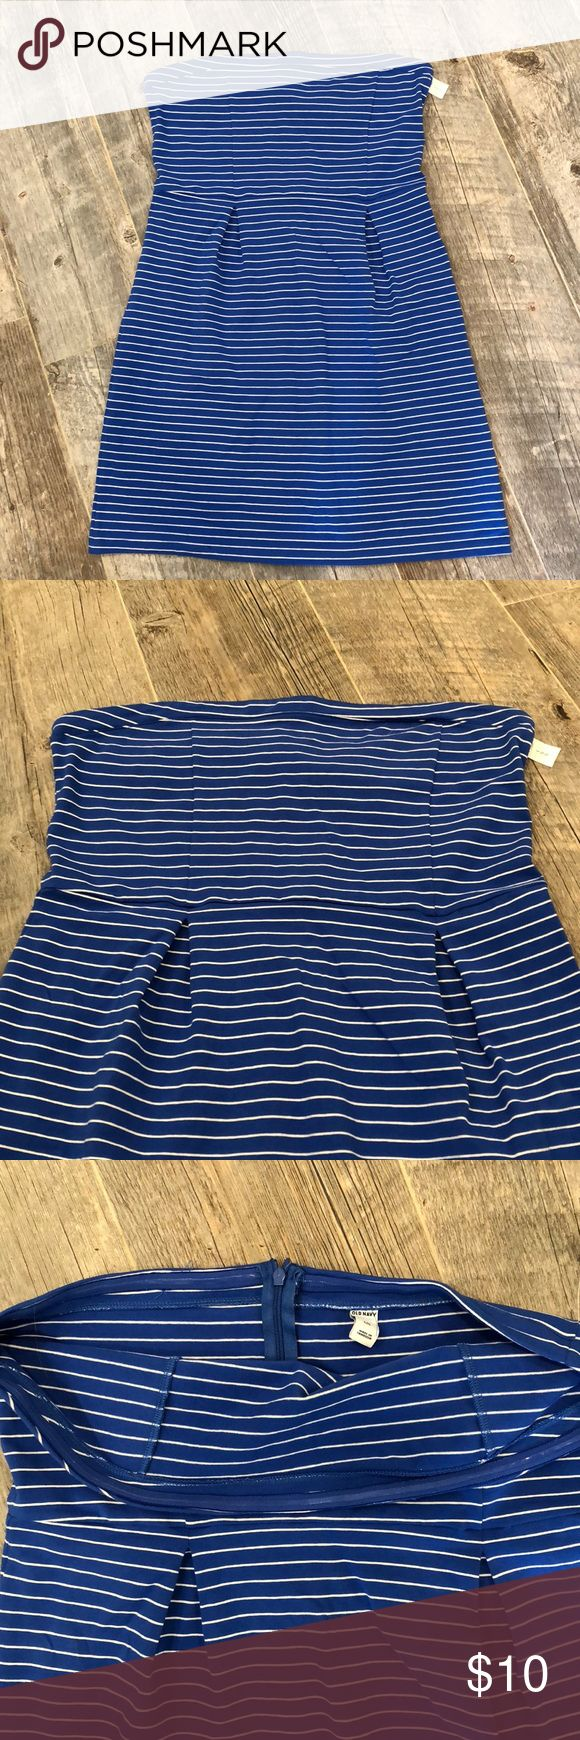 Blue and white tube top dress Brand new, so cute! Clean and smoke free home!! Size large. Royal blue and white. Elastic around top bust for keeping top up. Stretchy. Old Navy Dresses Strapless